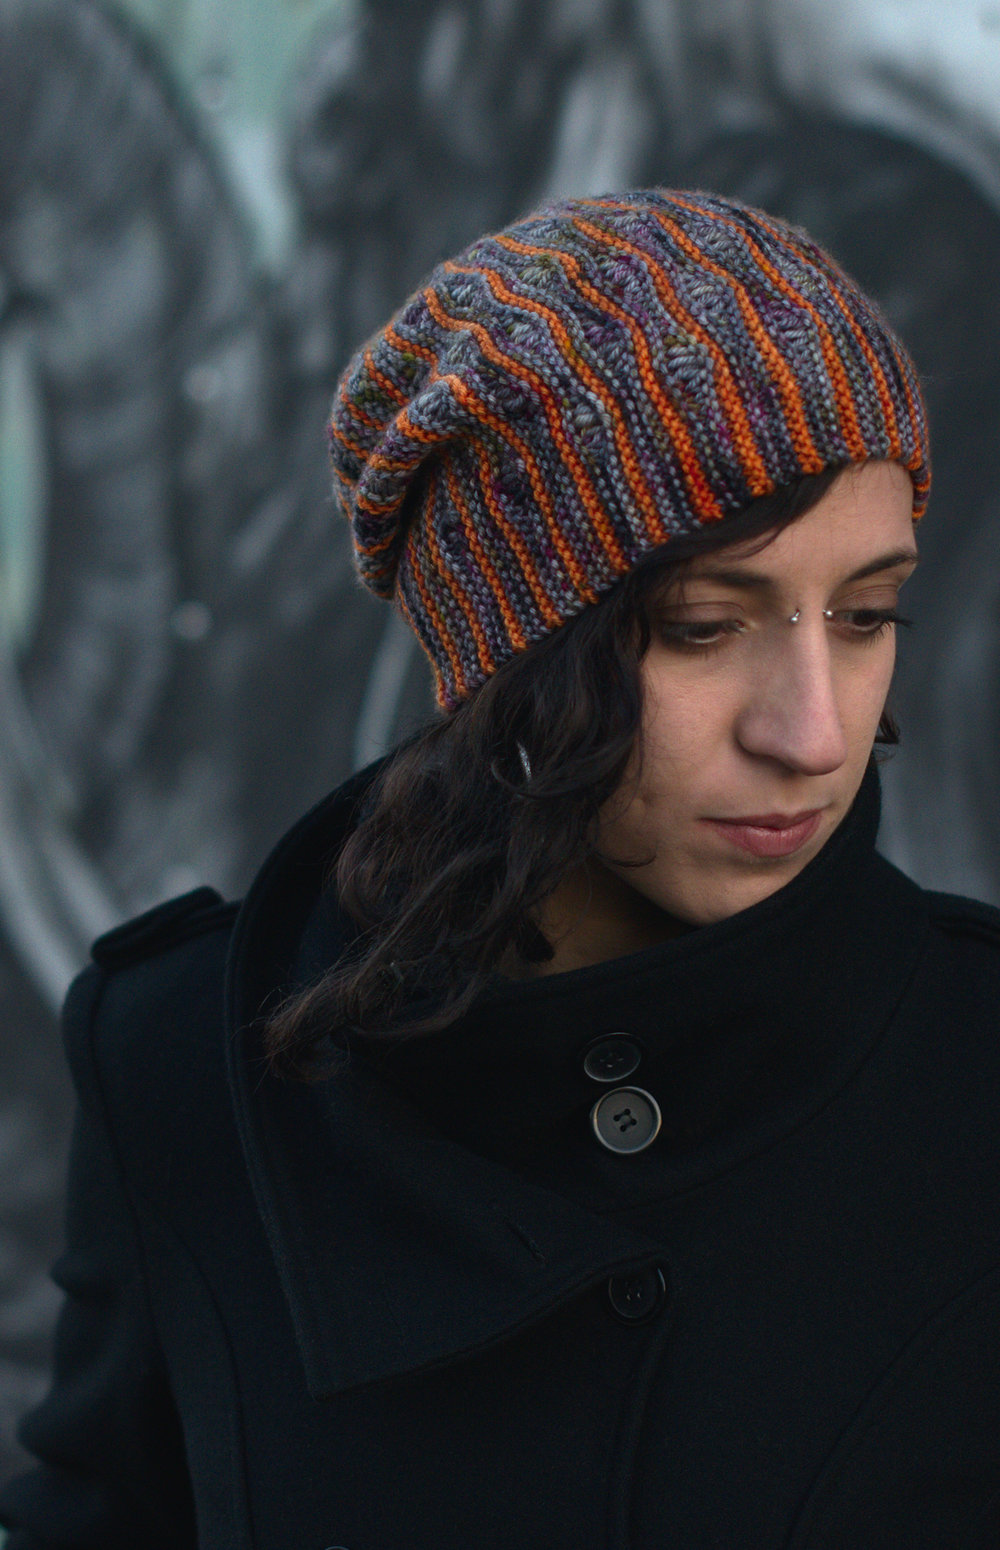 Laminard sideways knit slouchy Hat hand knitting pattern for hand-dyed DK yarns